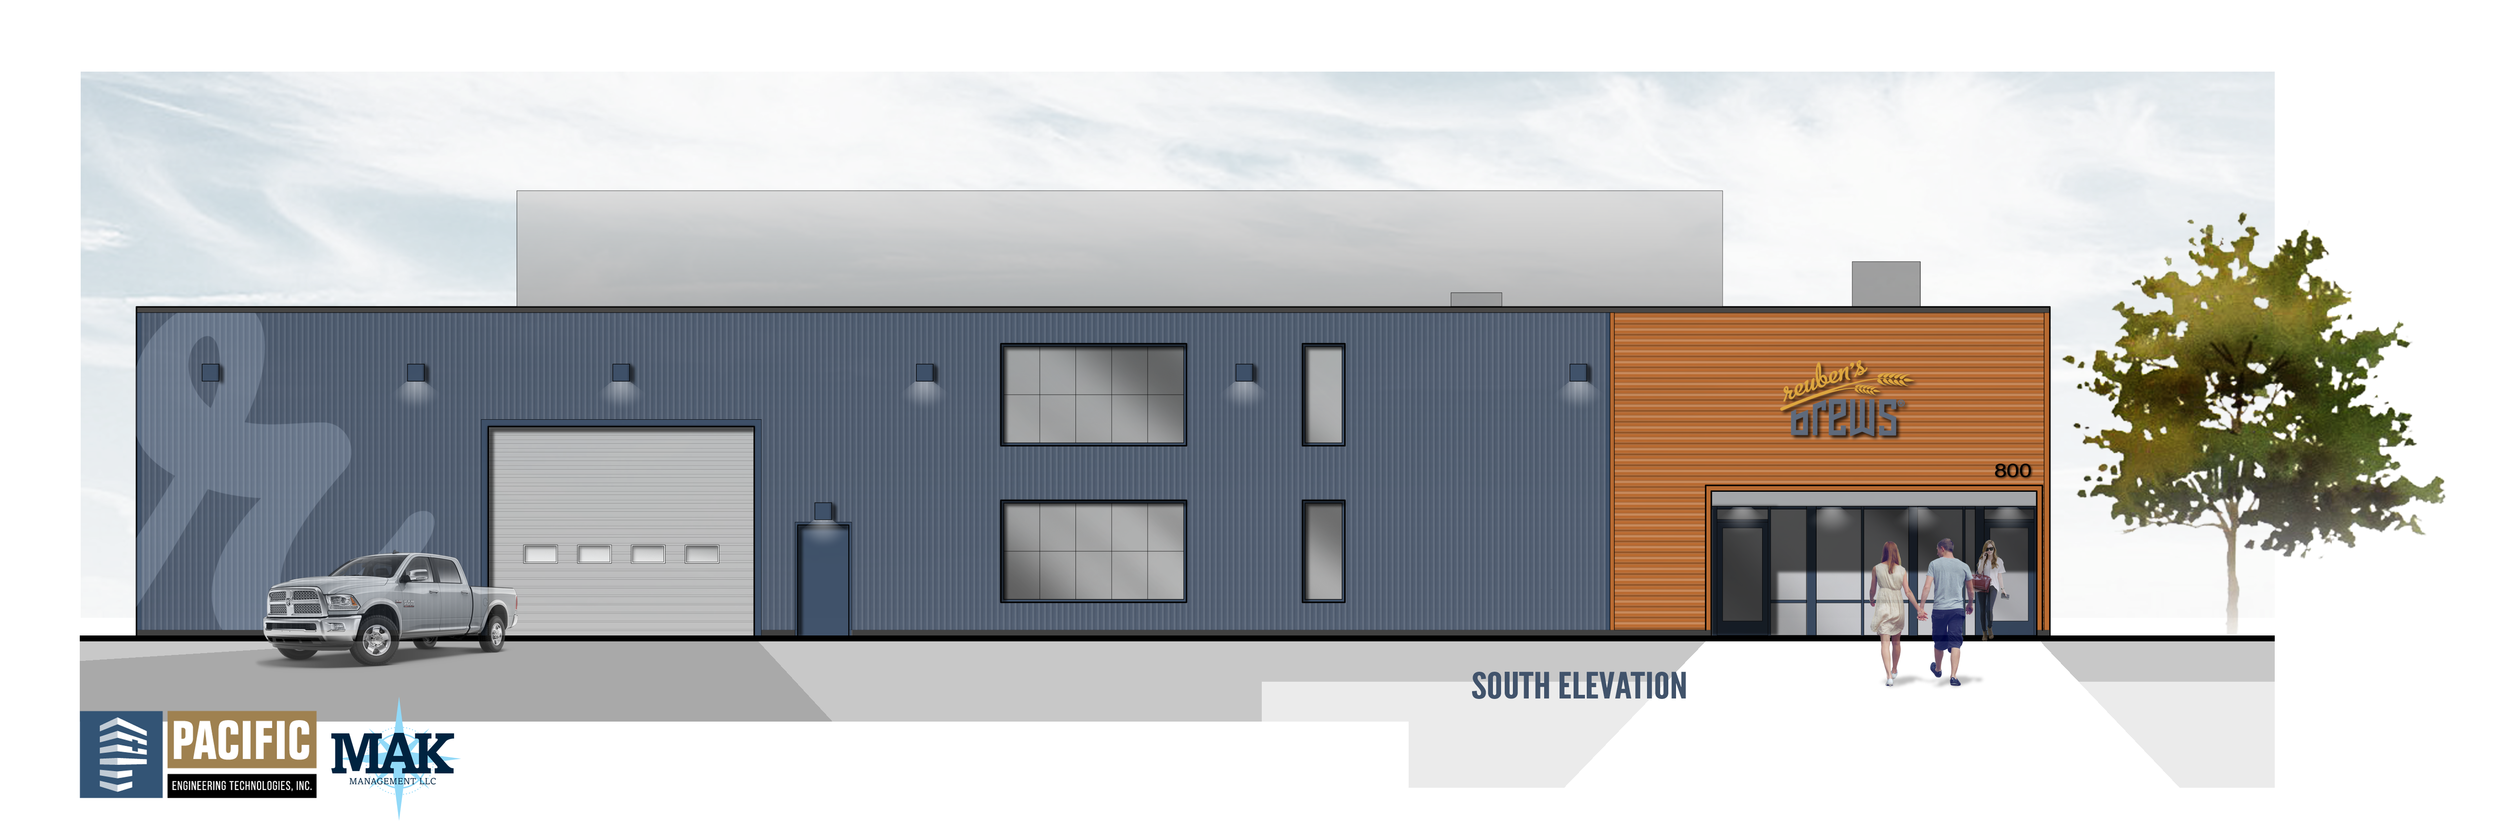 17231-South-Elevation-04-30-2018 (1).png